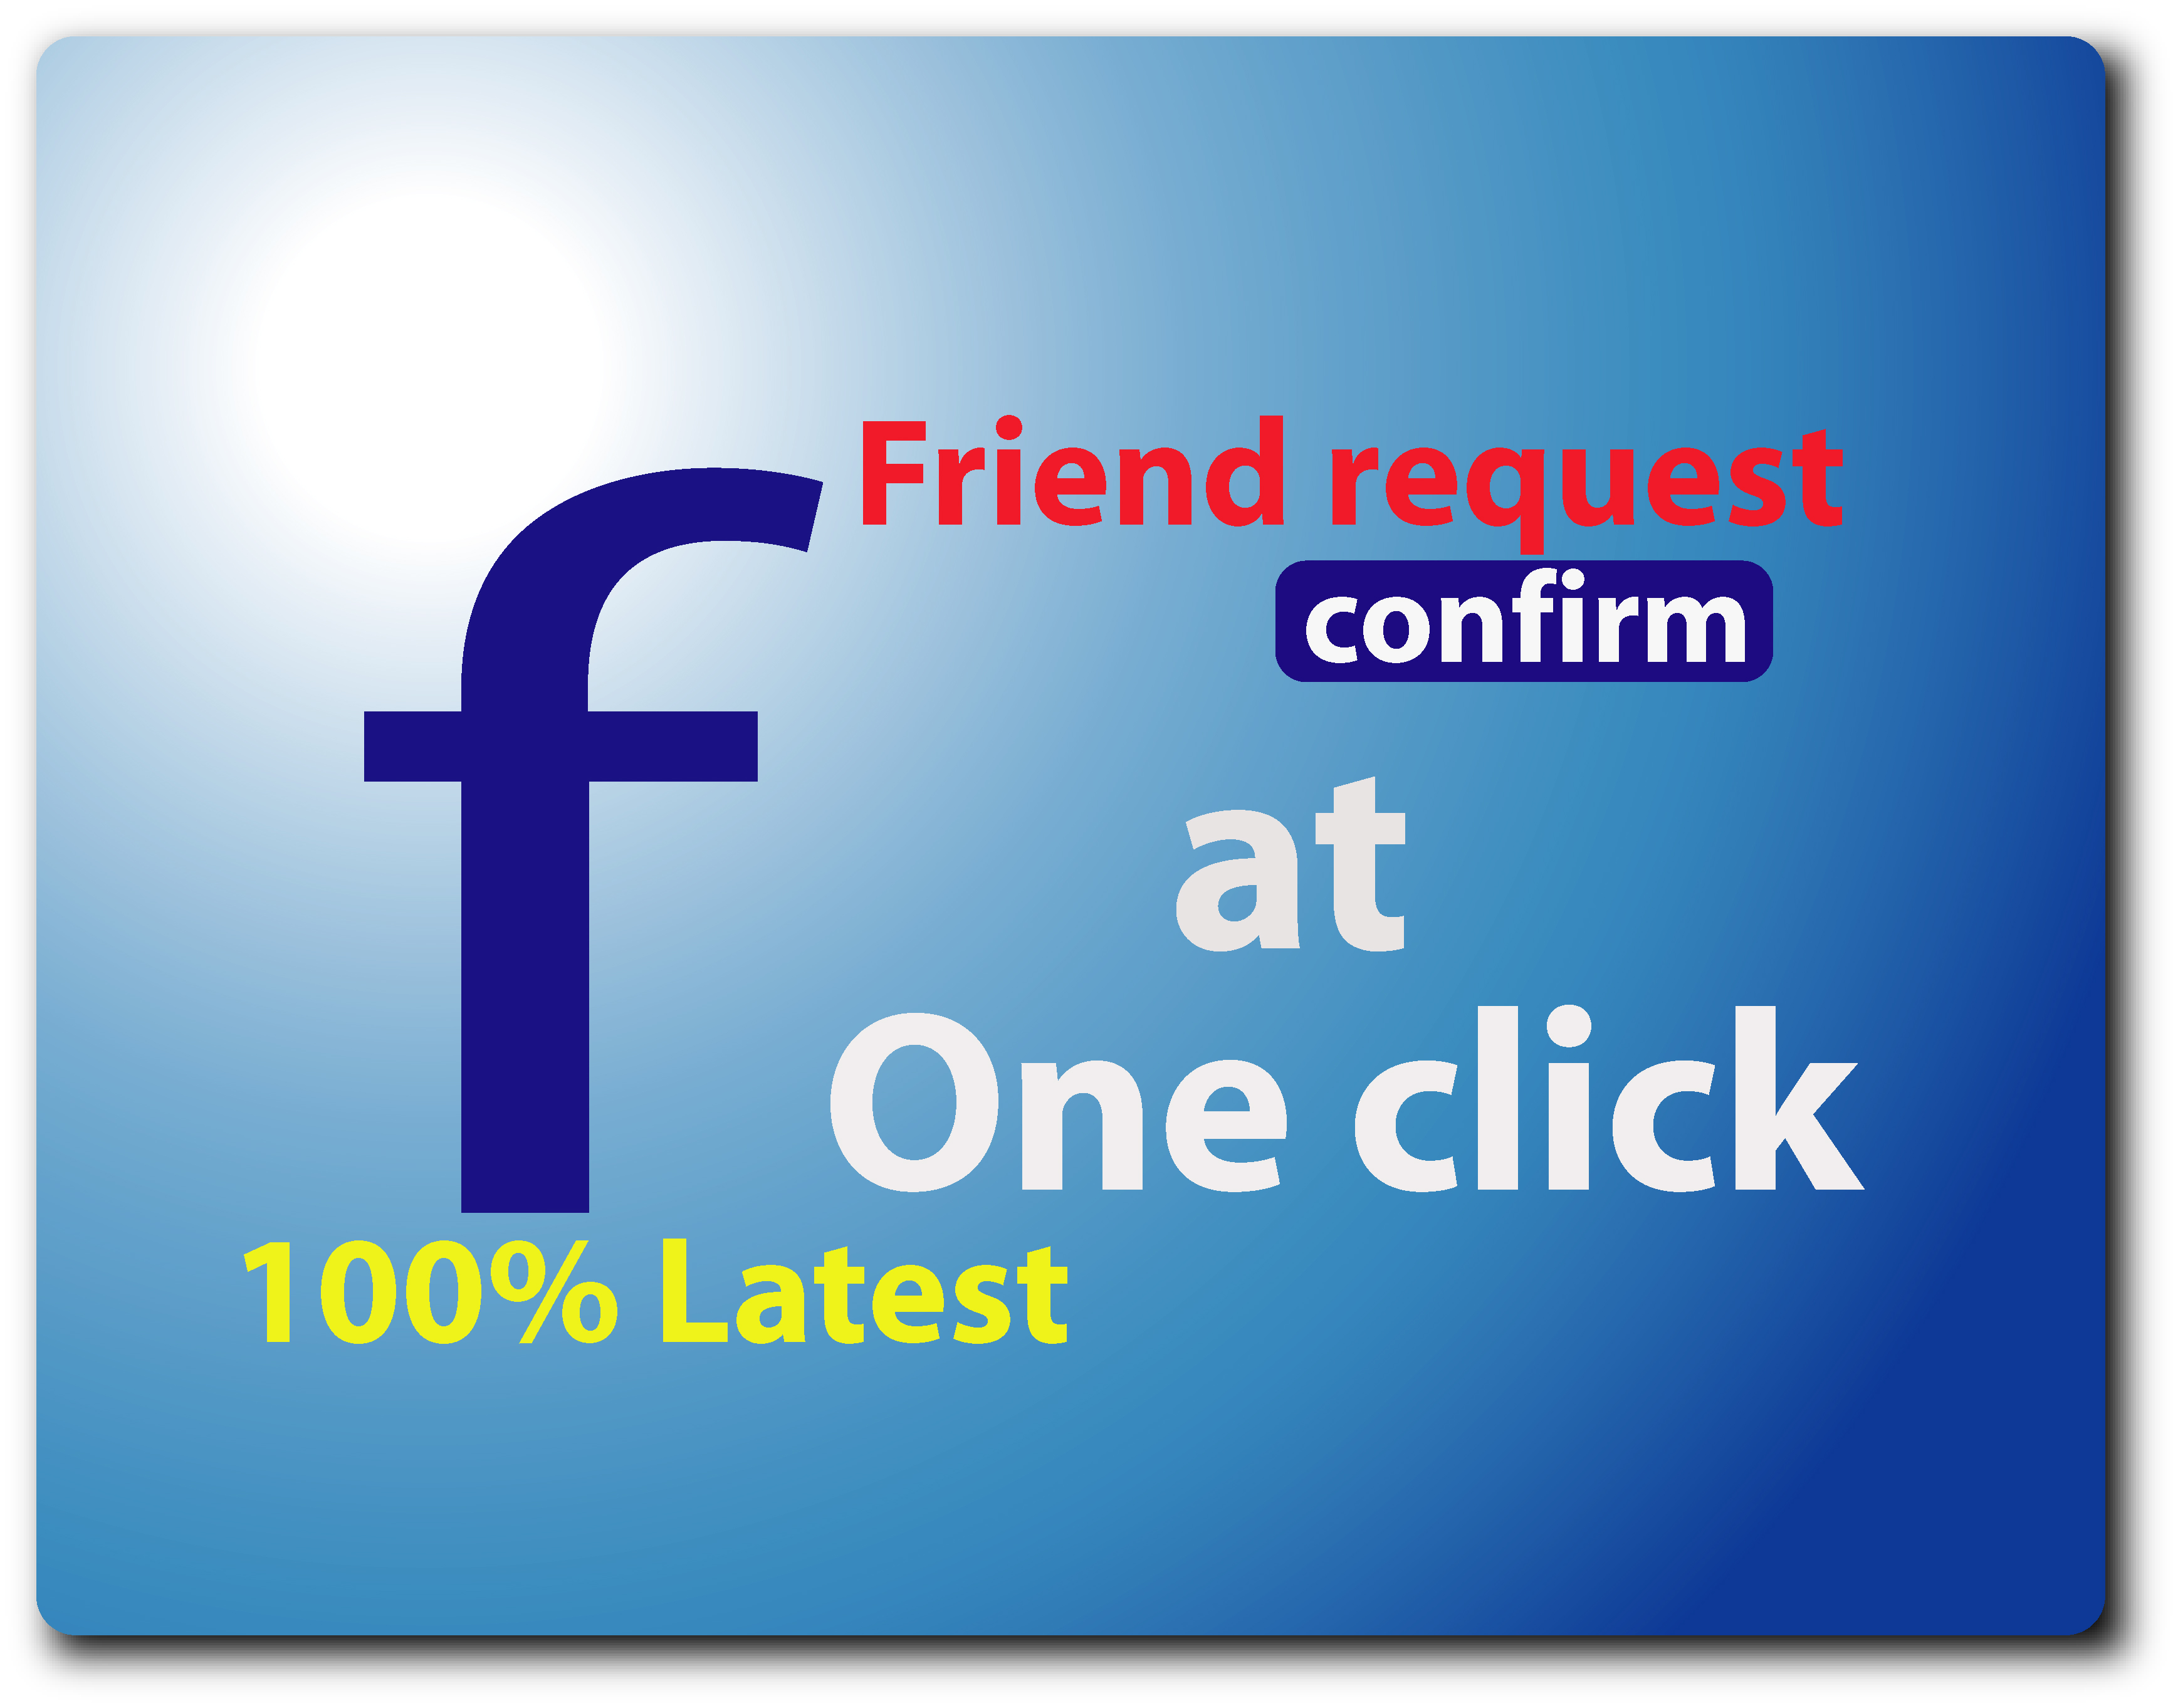 How to confirm all Facebook friend request at one click